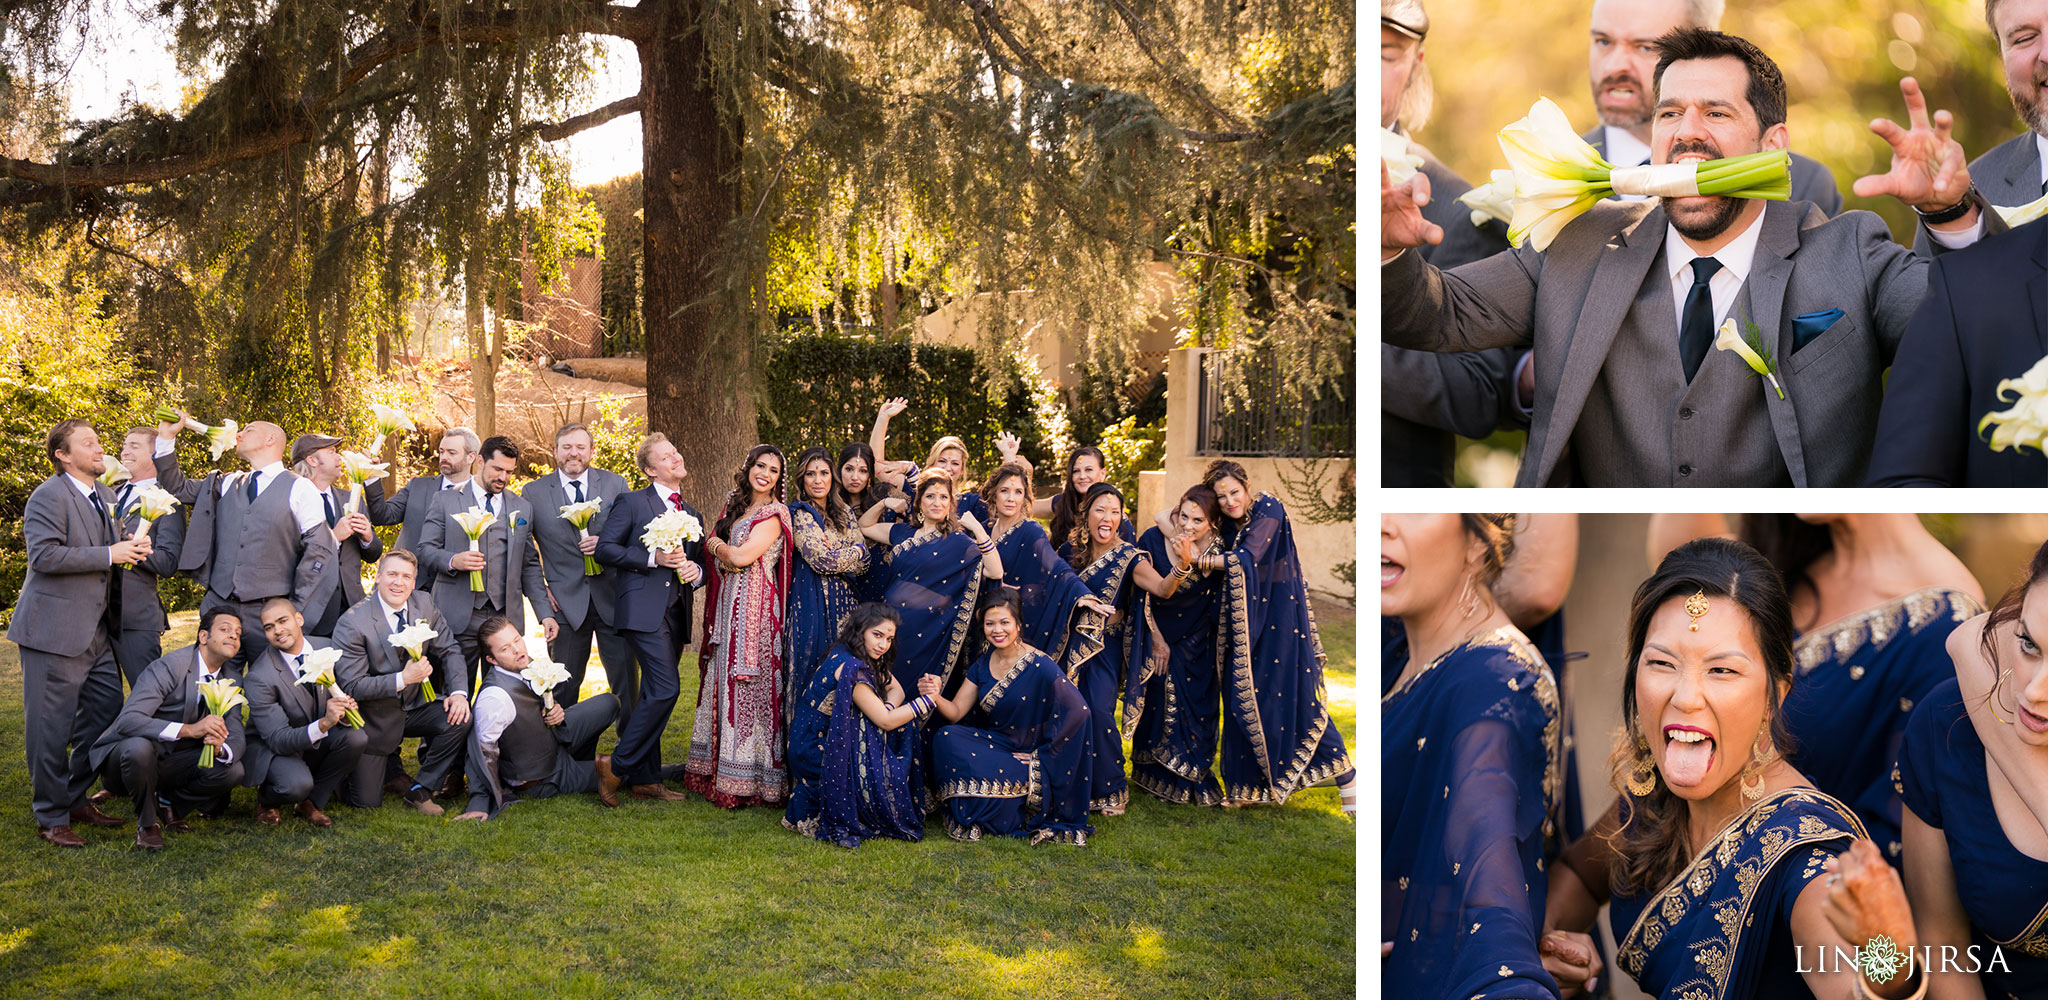 19 altadena town country club pakistani wedding party photography